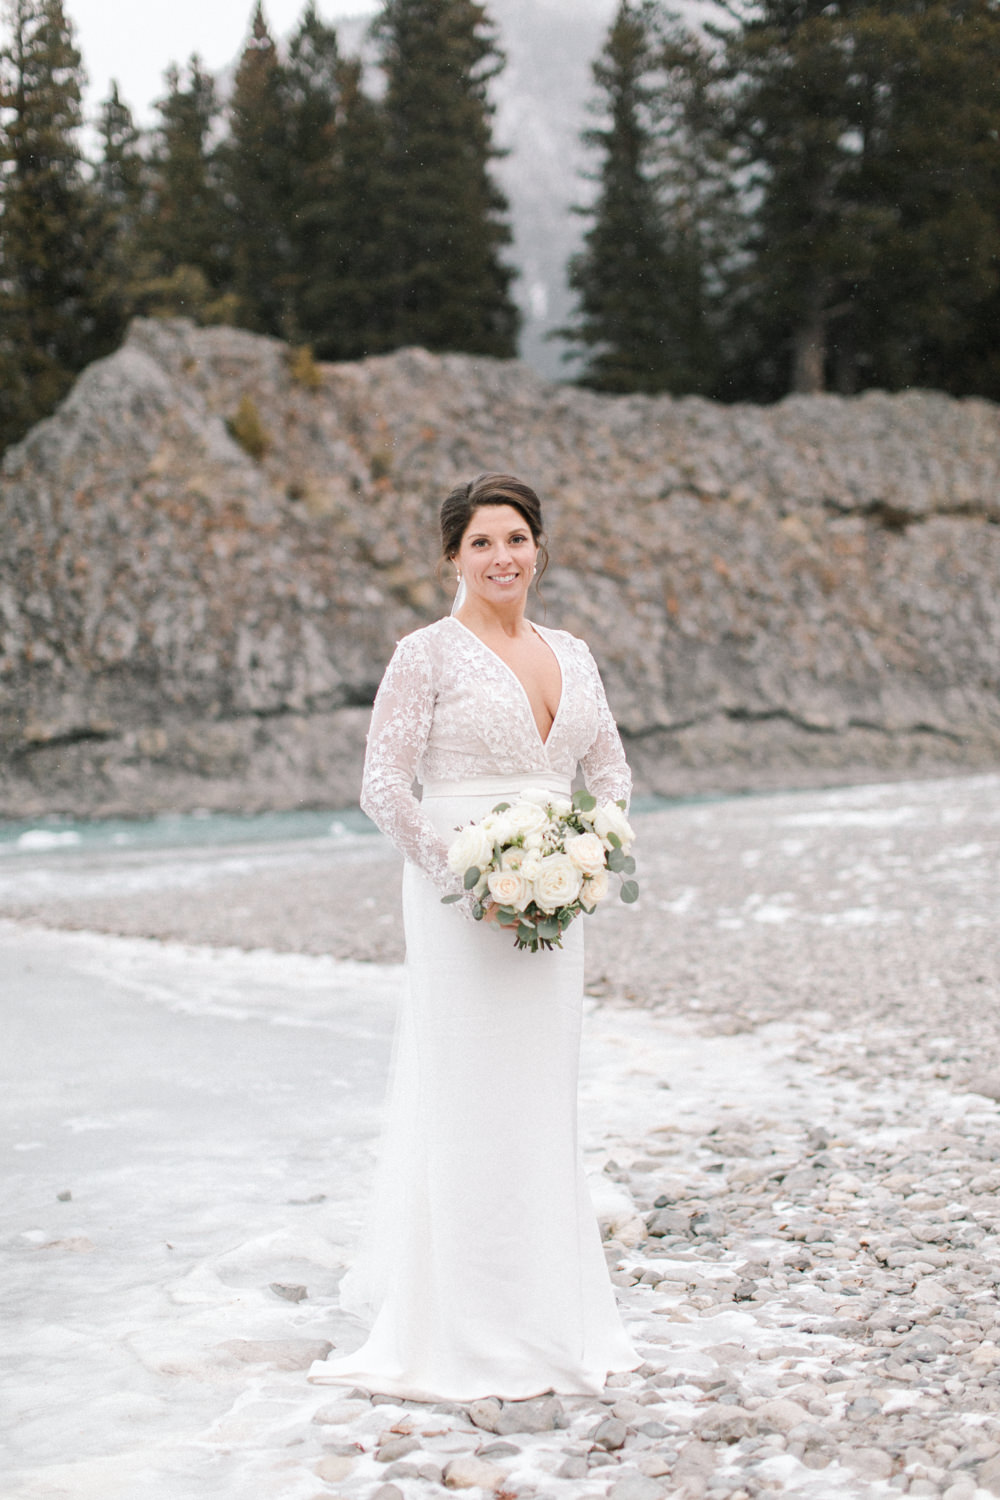 Torsten-and-Nina-at-Fairmont-banff-springs-Lynn-fletcher-weddings-81.jpg